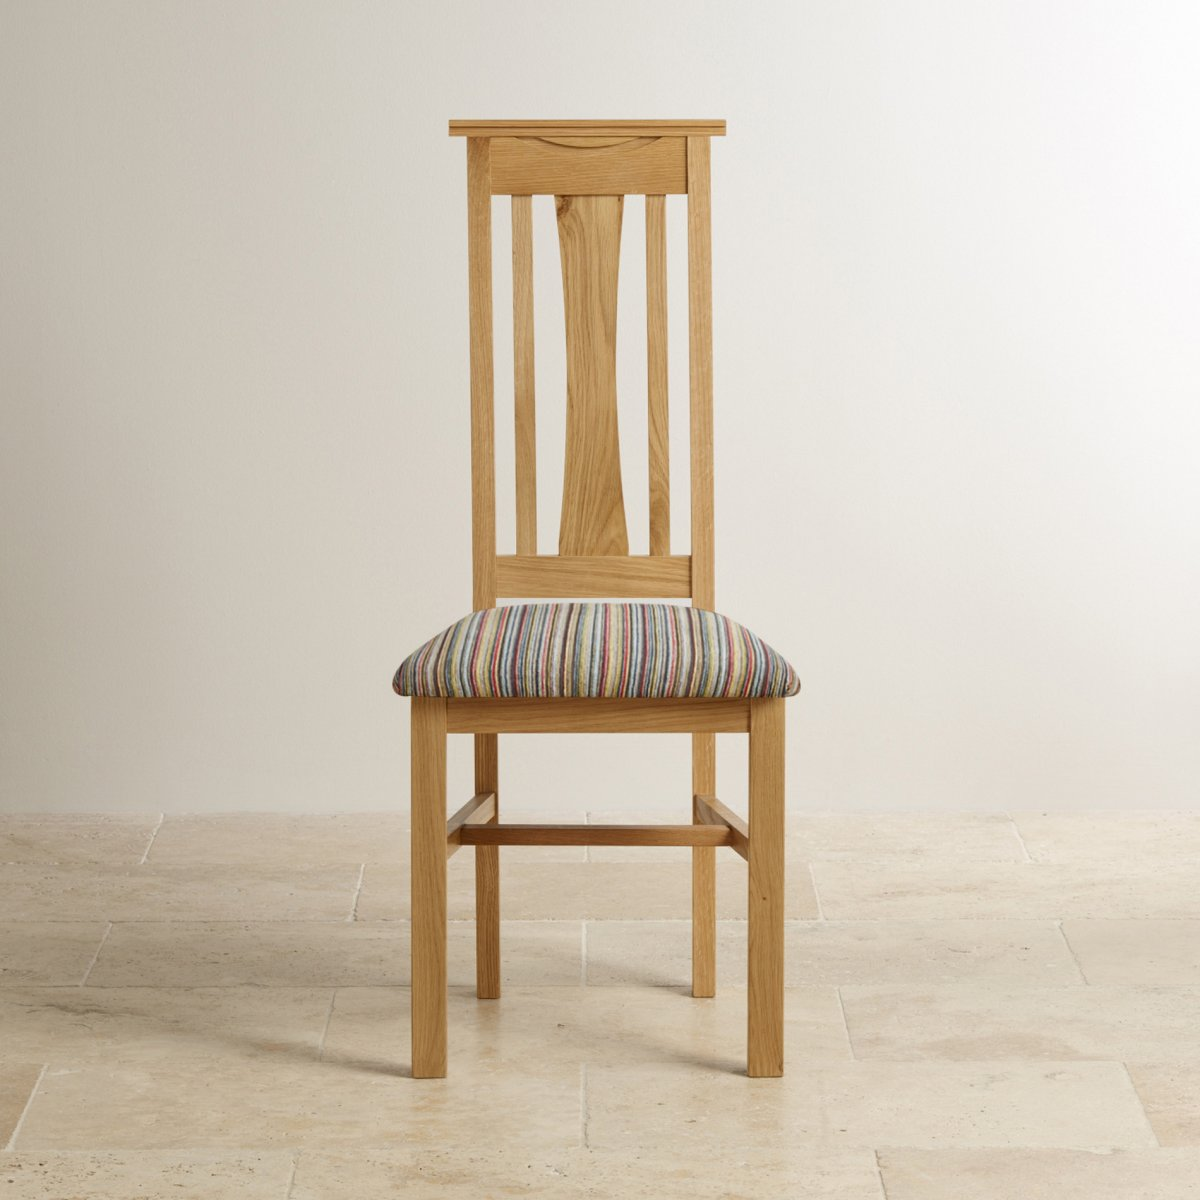 Tokyo dining chair in solidl oak multi striped patterned